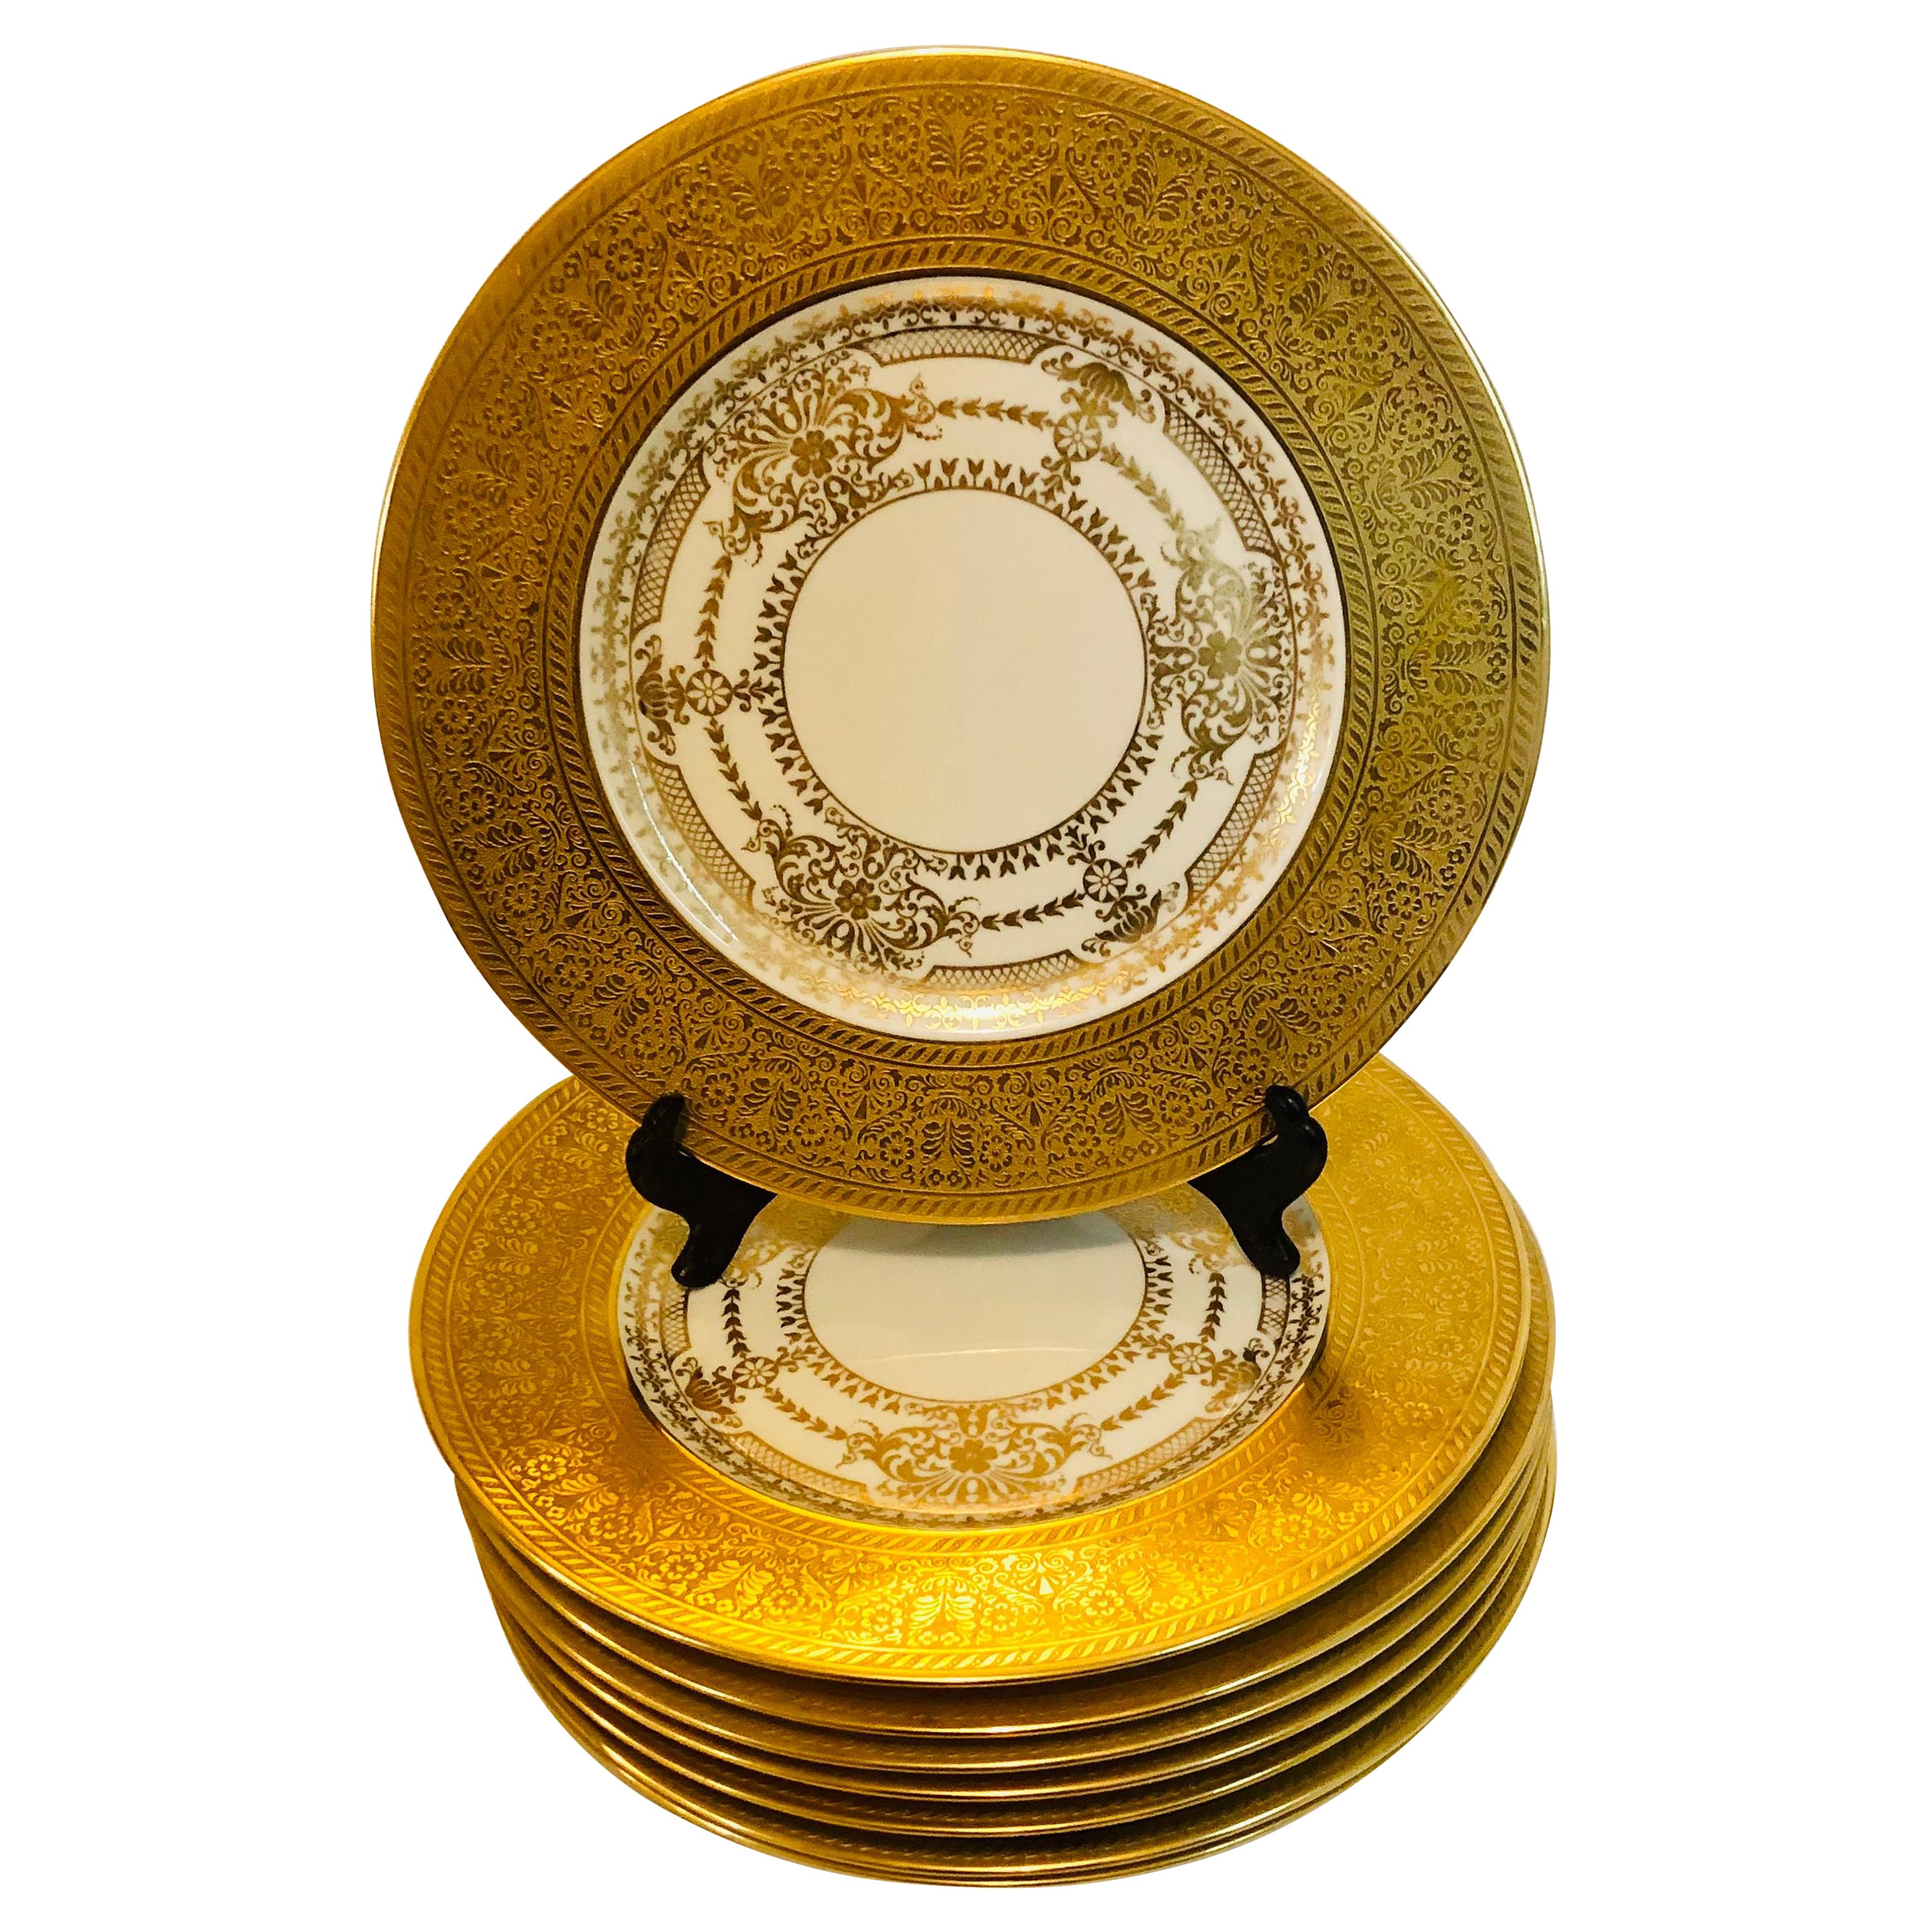 Set of 8 Bavarian Service Plates with Thick Border of Gold Embossed Decoration